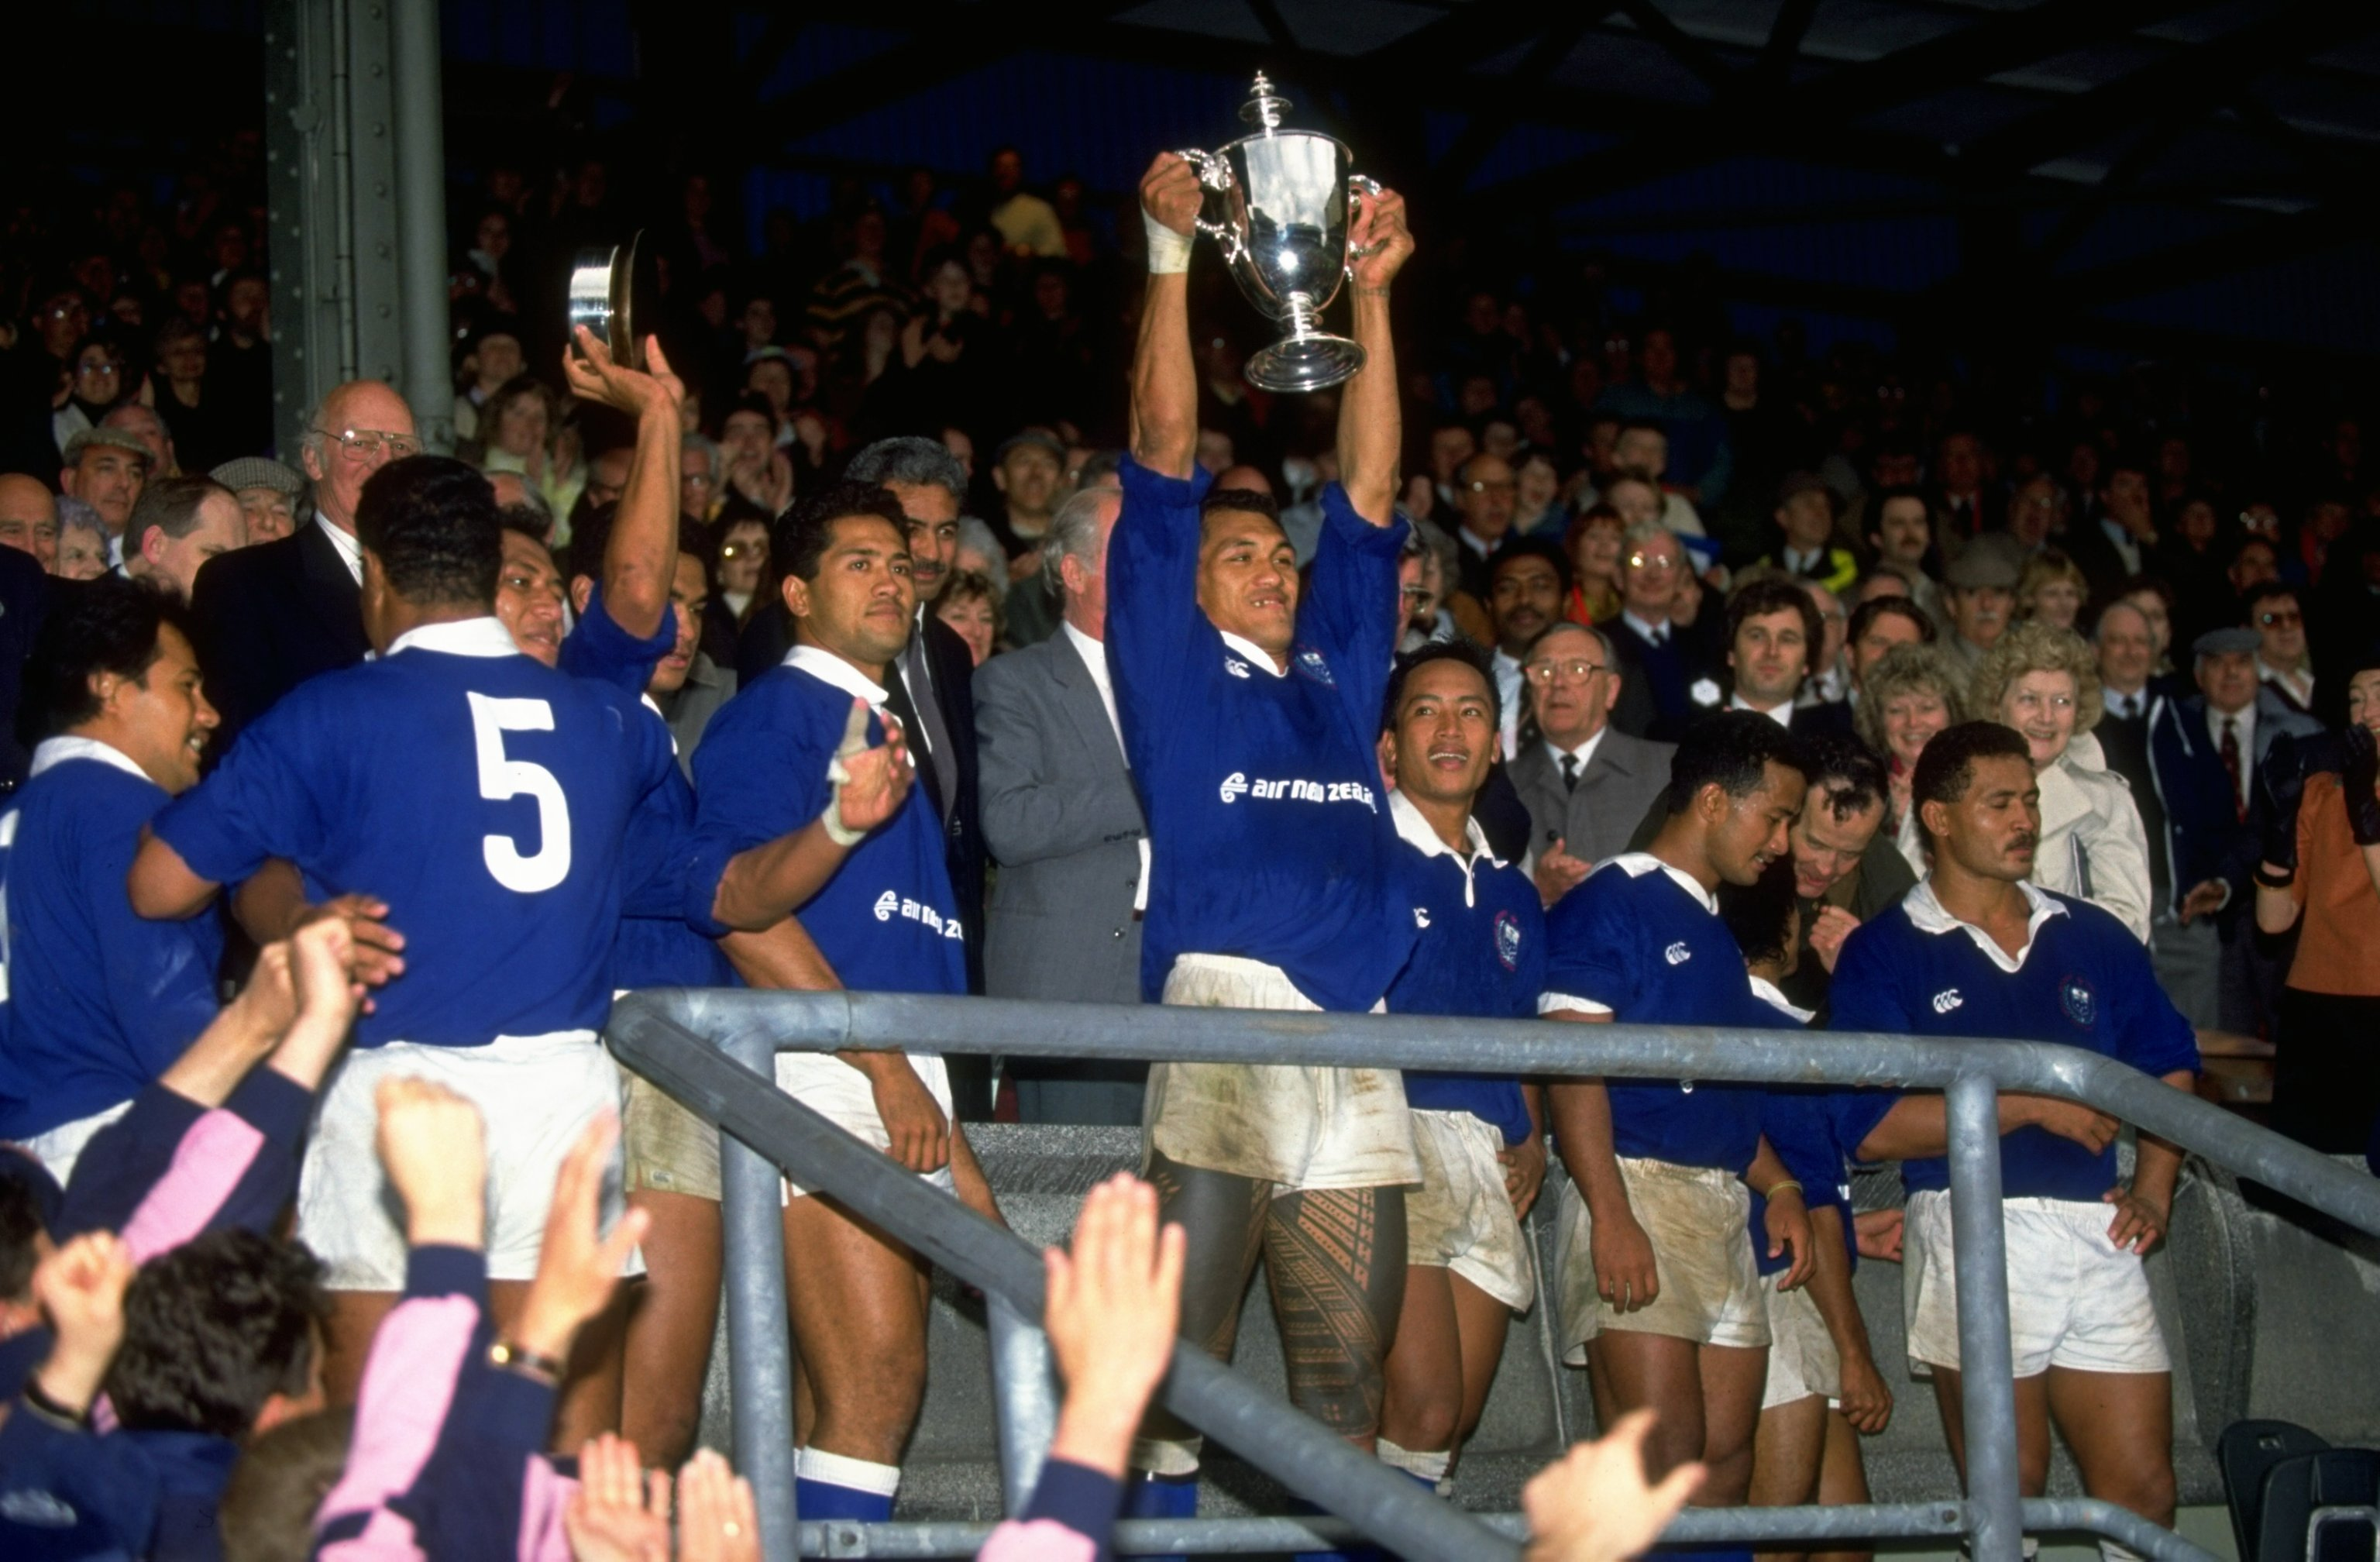 The Western Samoan team collect the trophy after winning the Middlesex Sevens